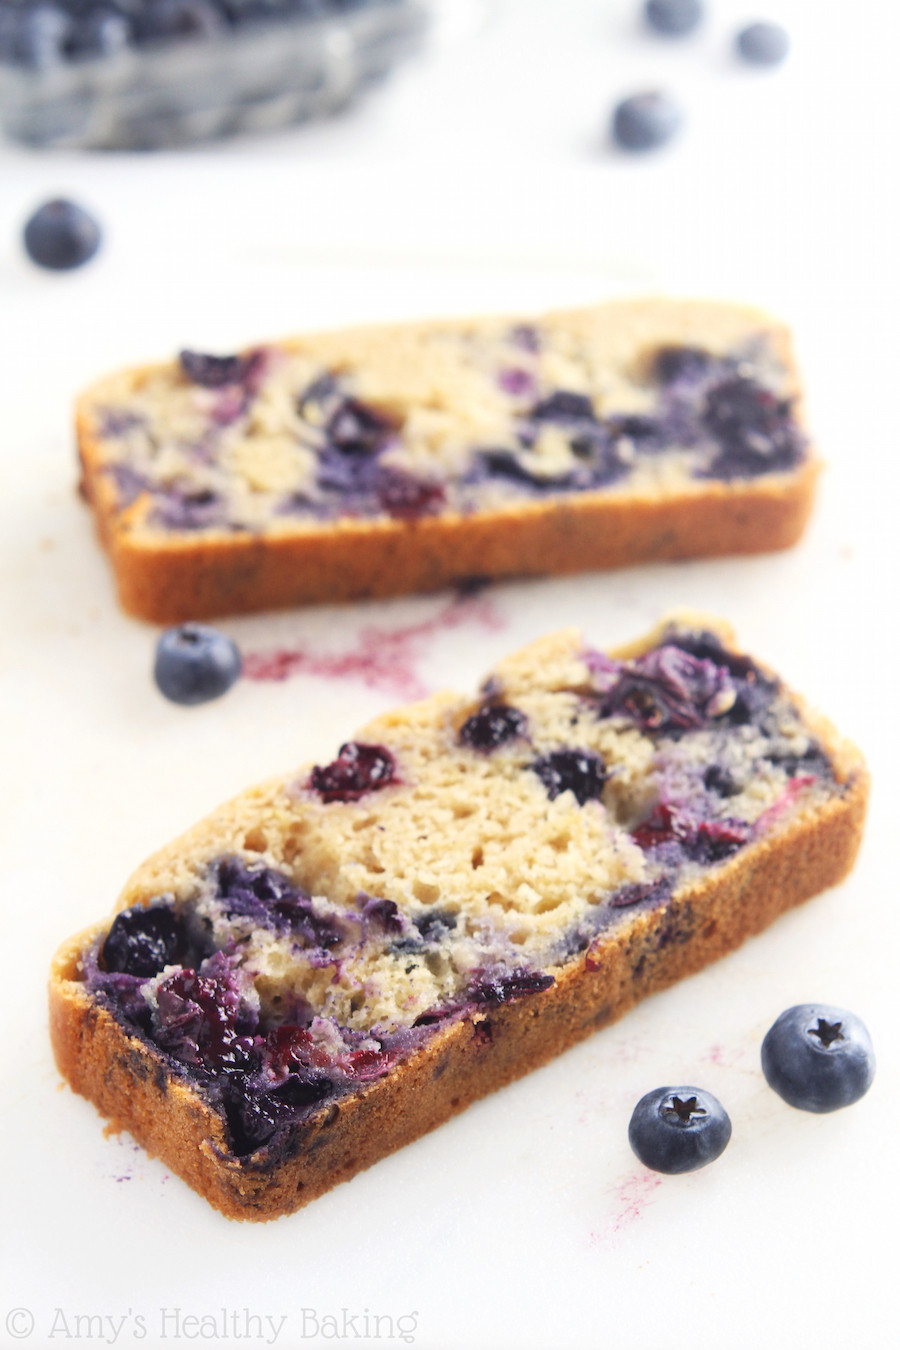 Healthy Blueberry Breakfast Recipes  Lemon Blueberry Breakfast Loaf